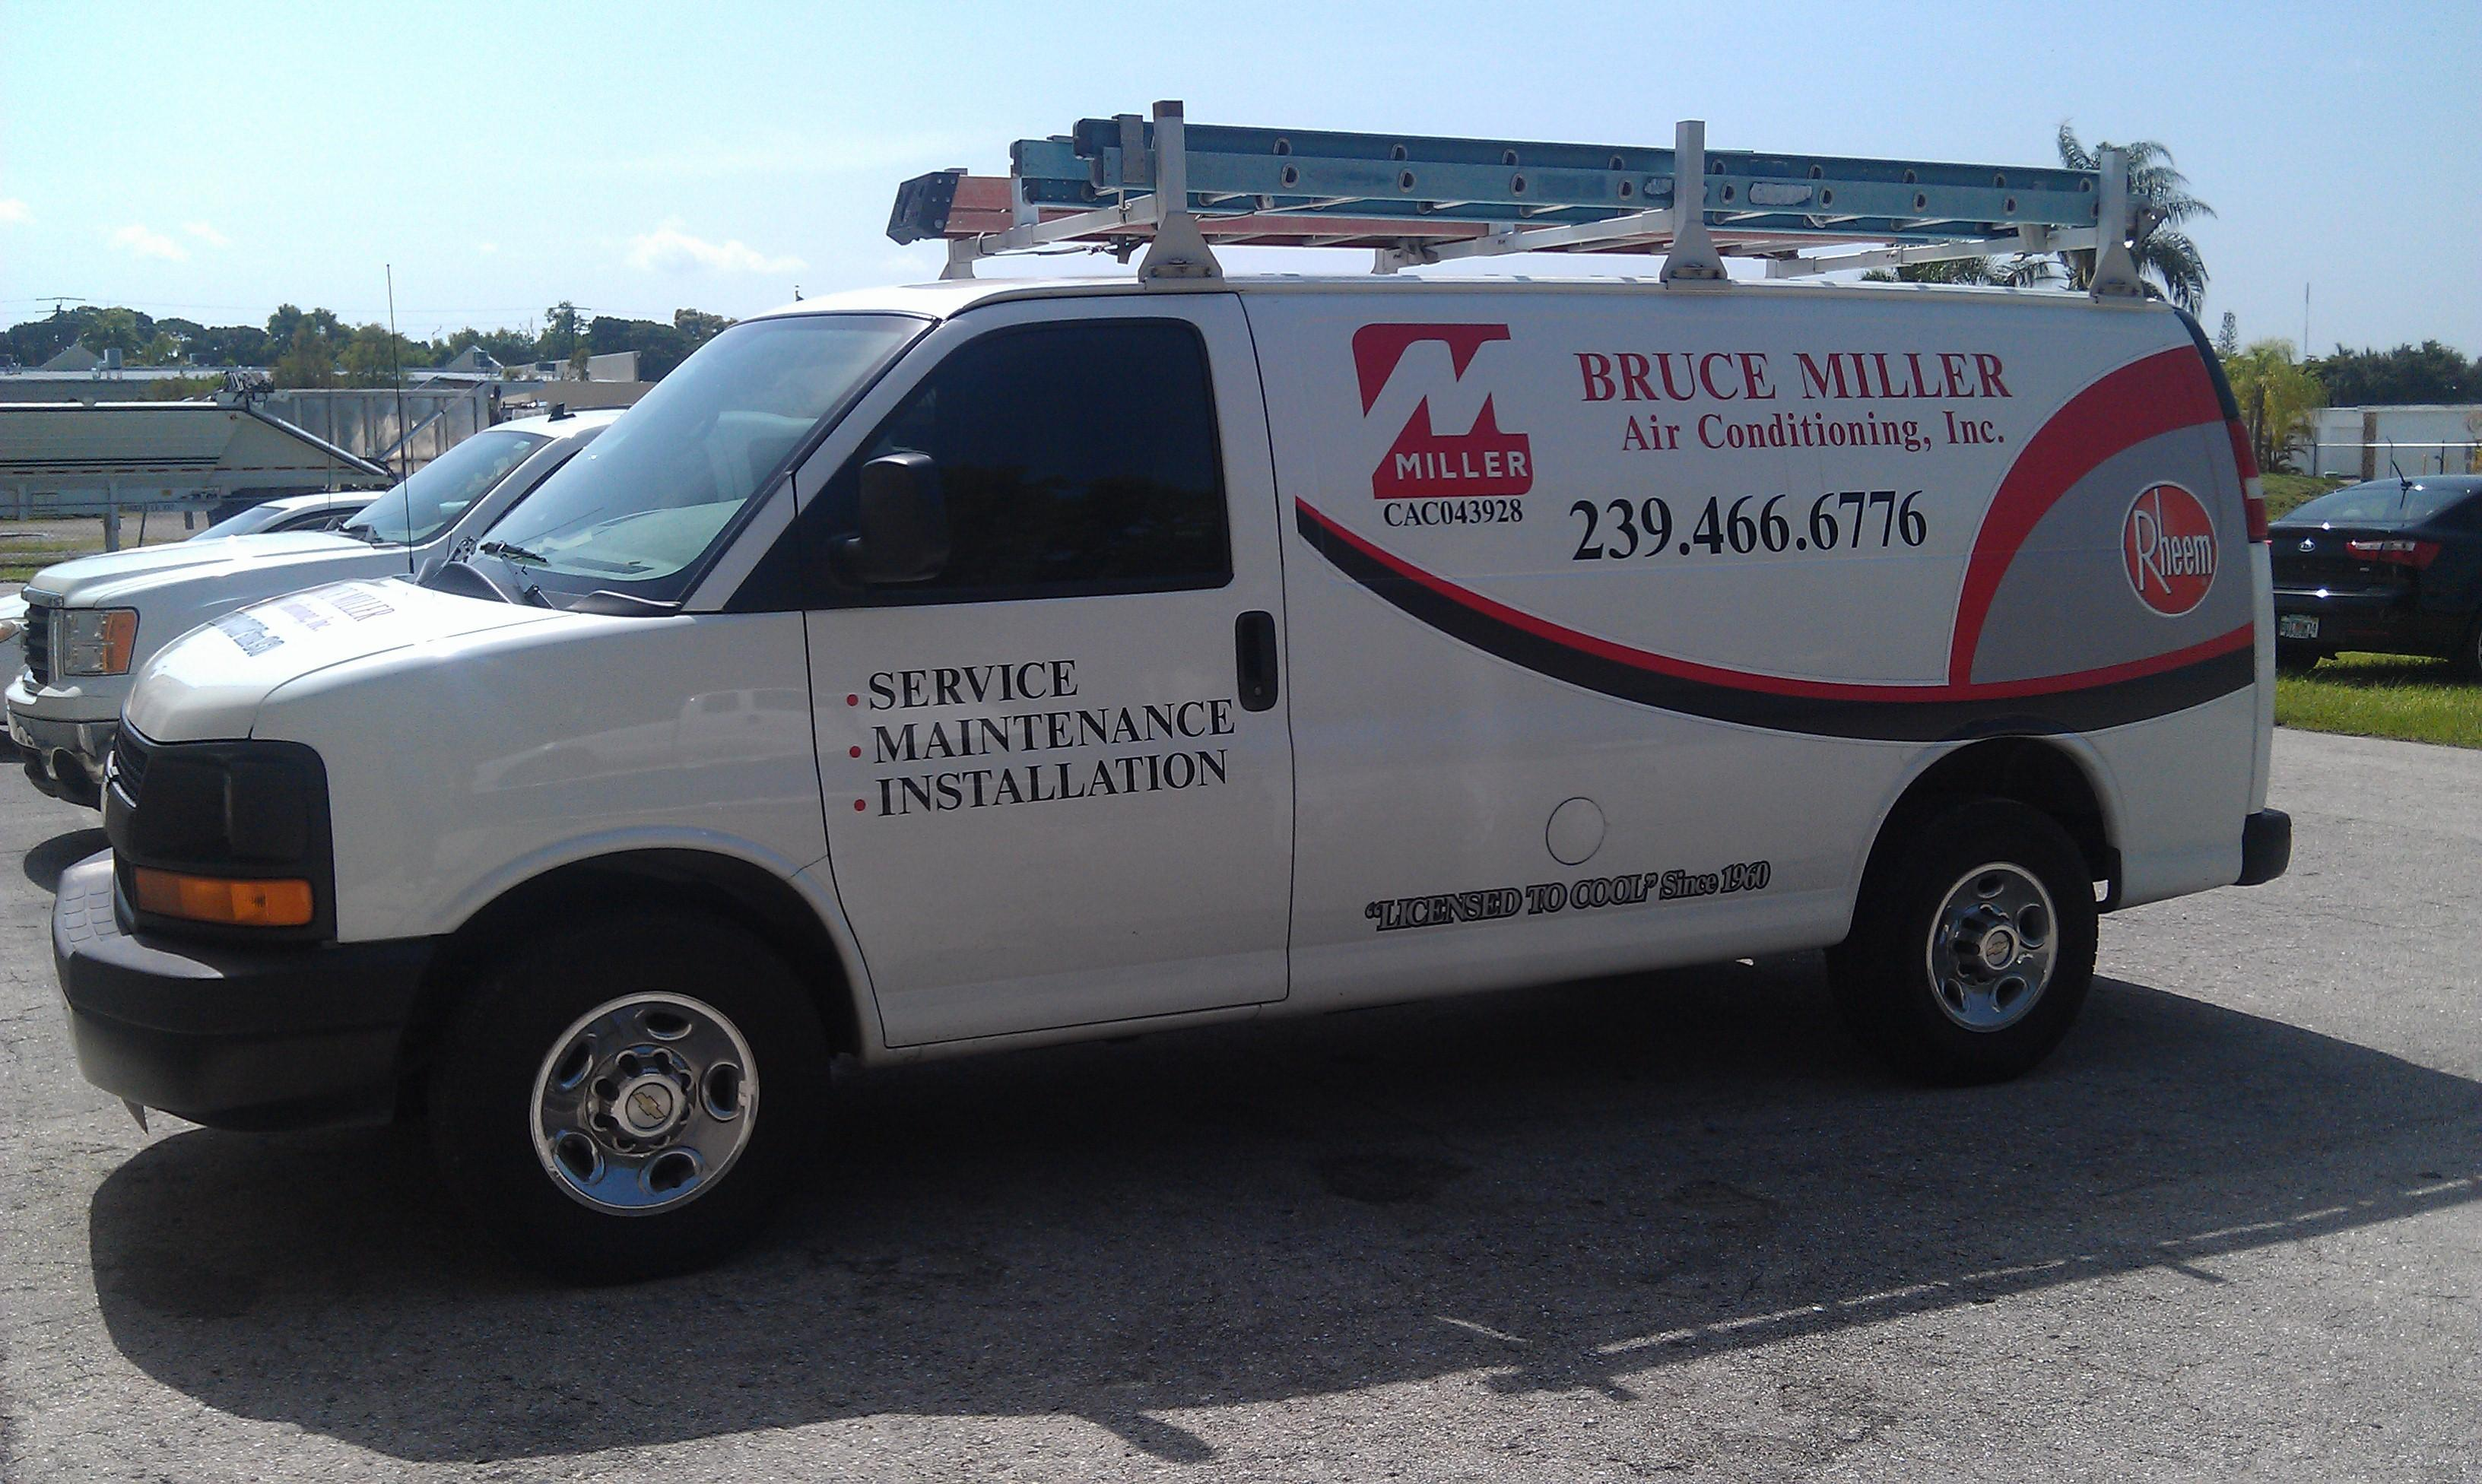 Bruce Miller Air Conditioning, Inc.